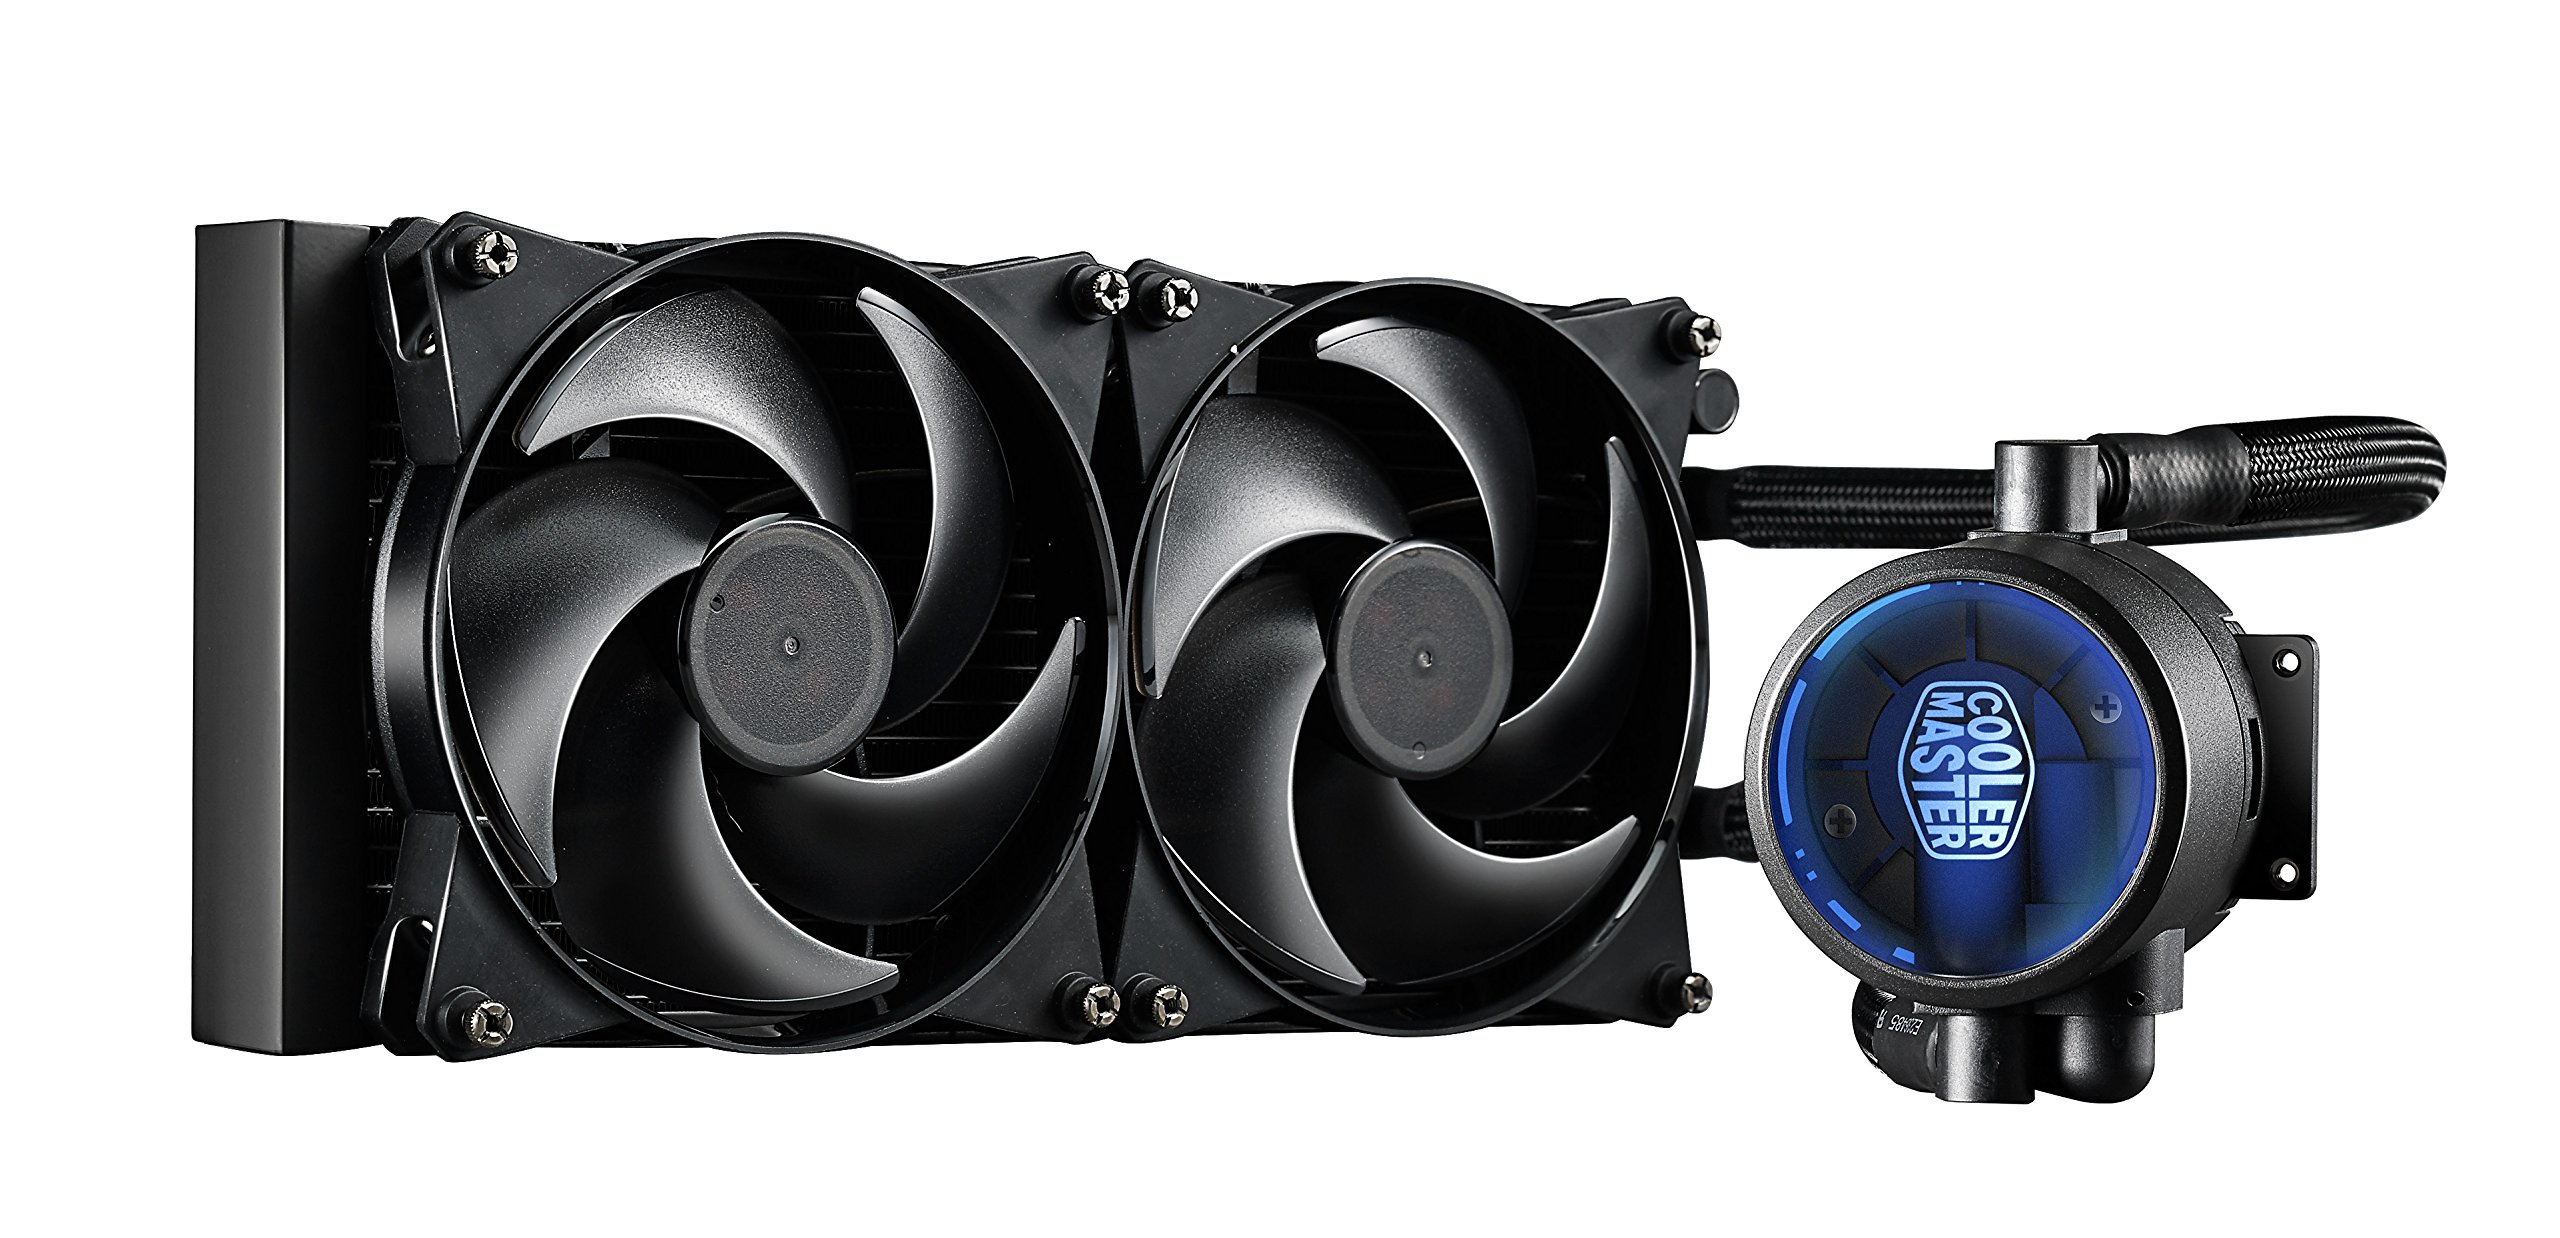 Cooler Master MasterLiquid Pro 280 CPU Cooler, All-In-One Liquid Cooler with FlowOp Technology, Dual Chamber Design, 140mm x 2 MasterFan Pro Fans by Cooler Master